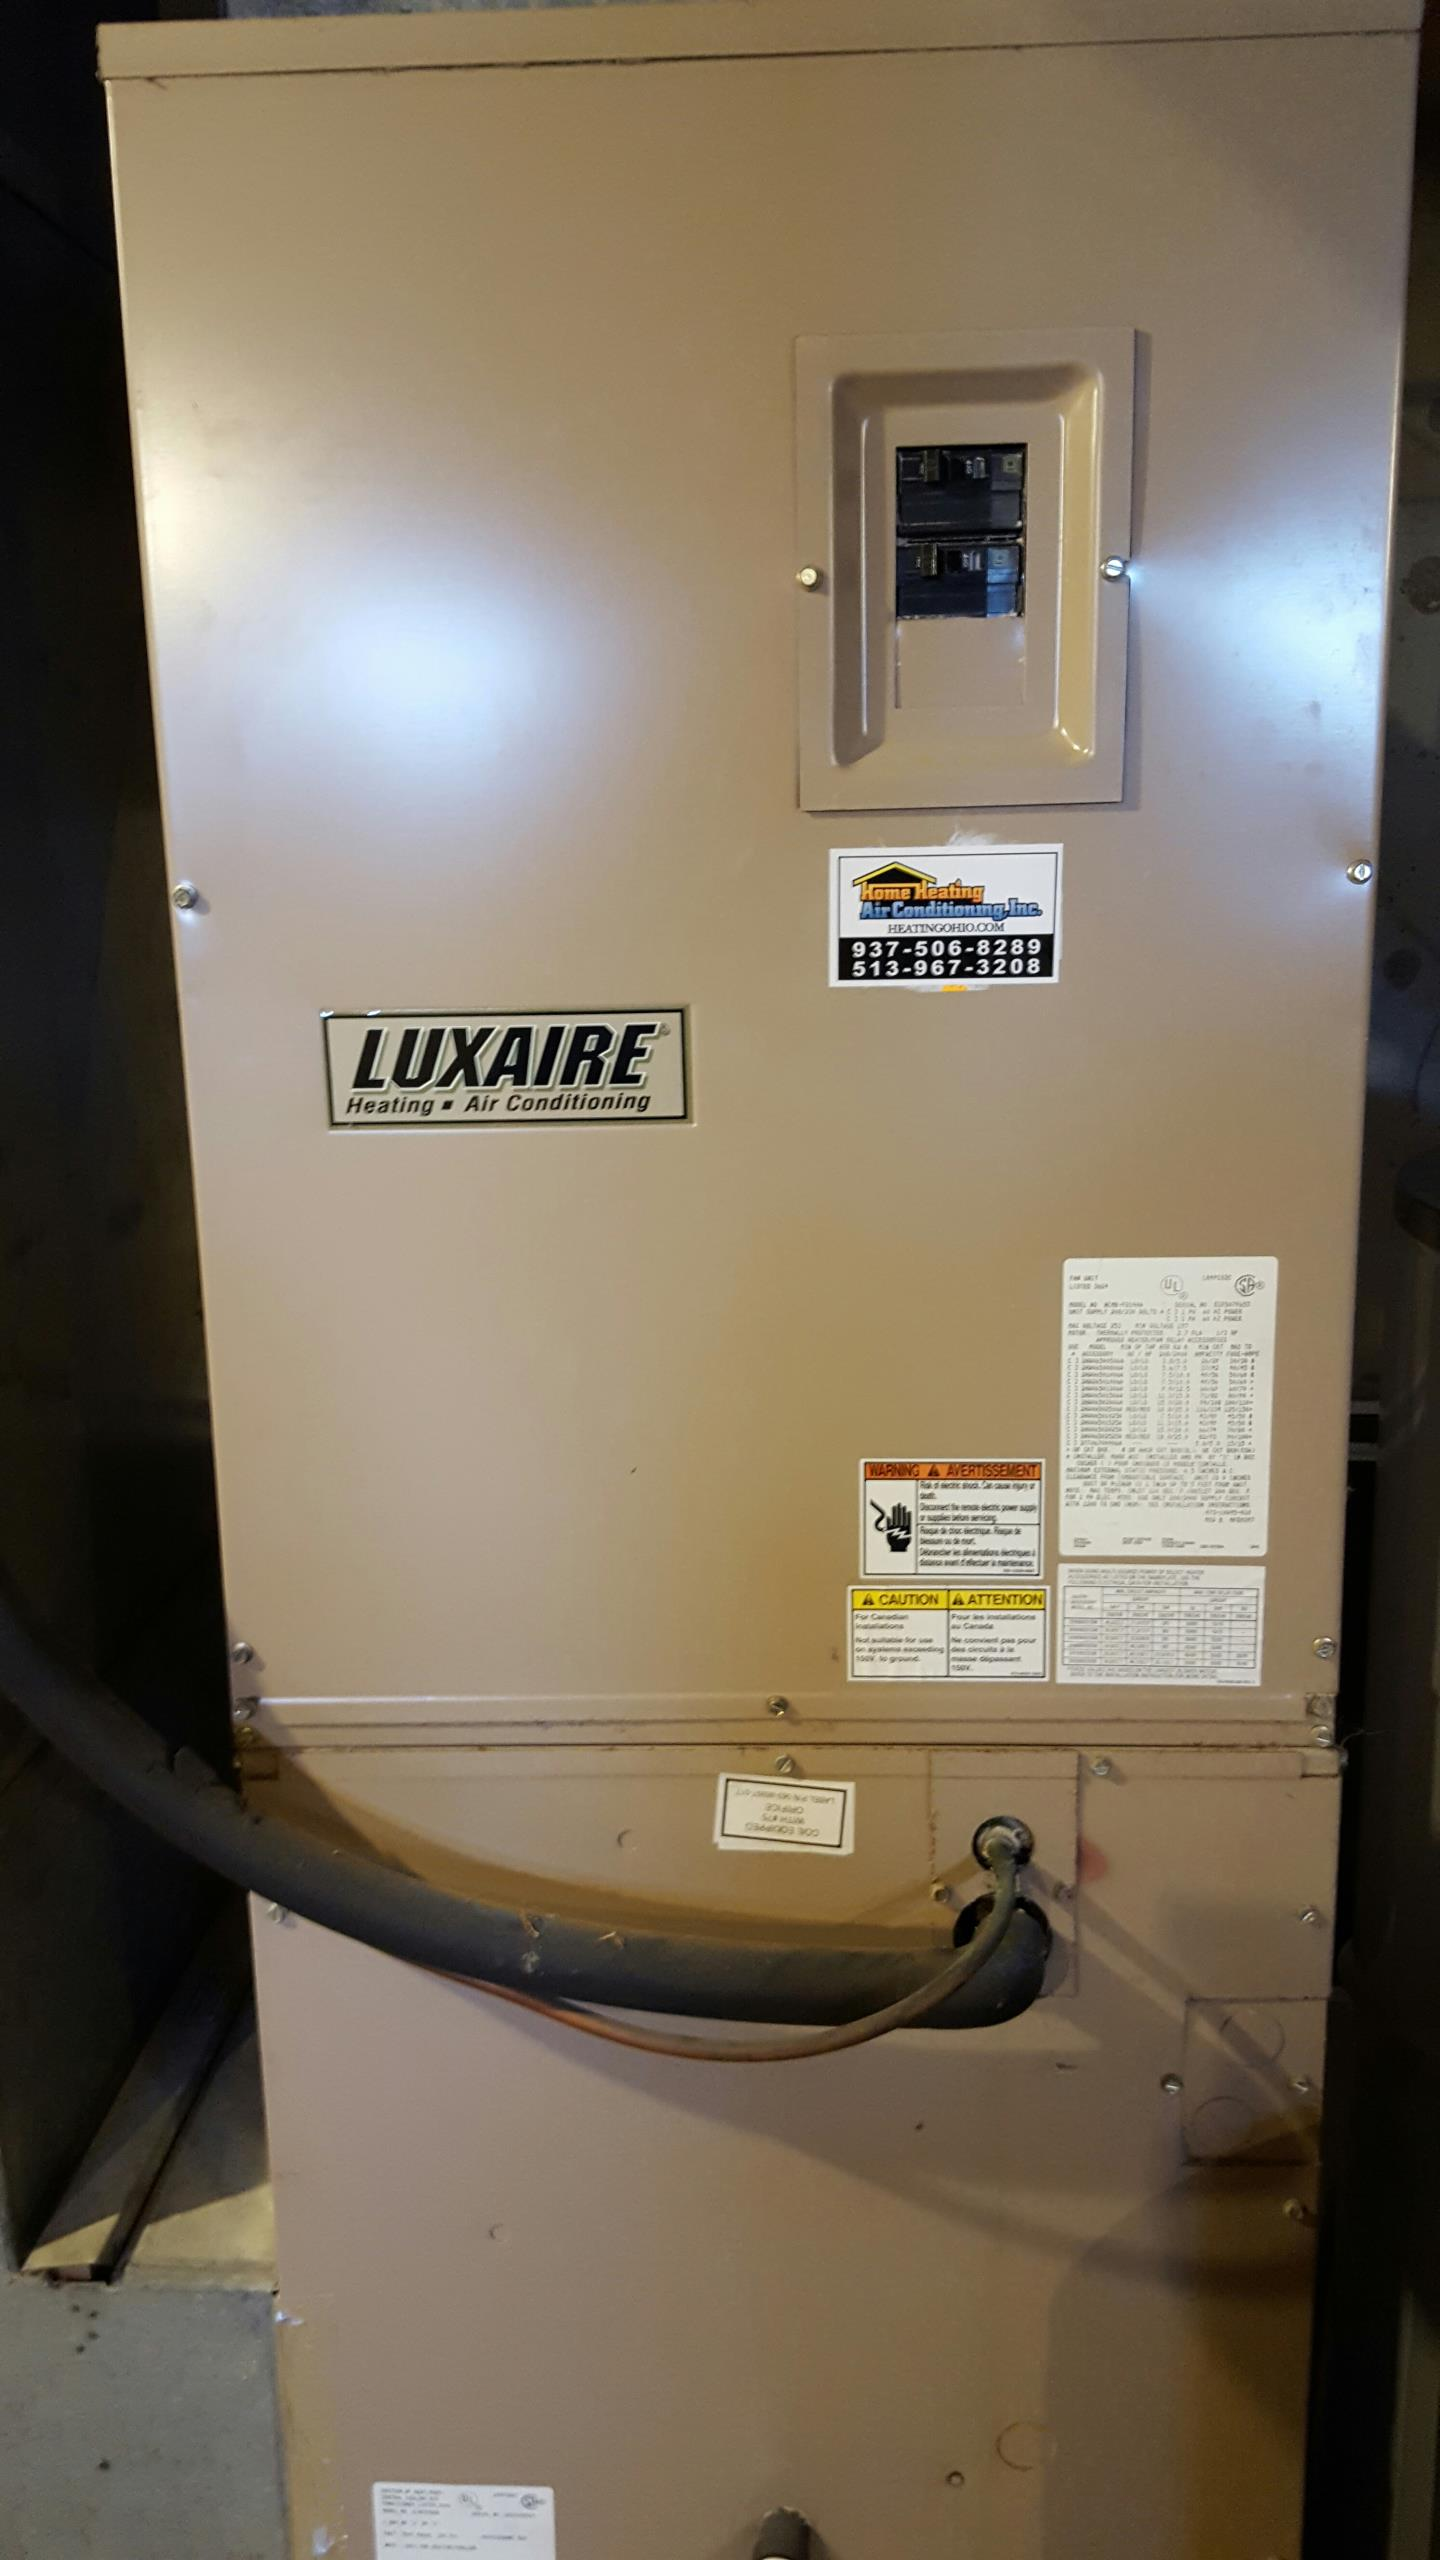 Mason, OH - Lux aire heat pump